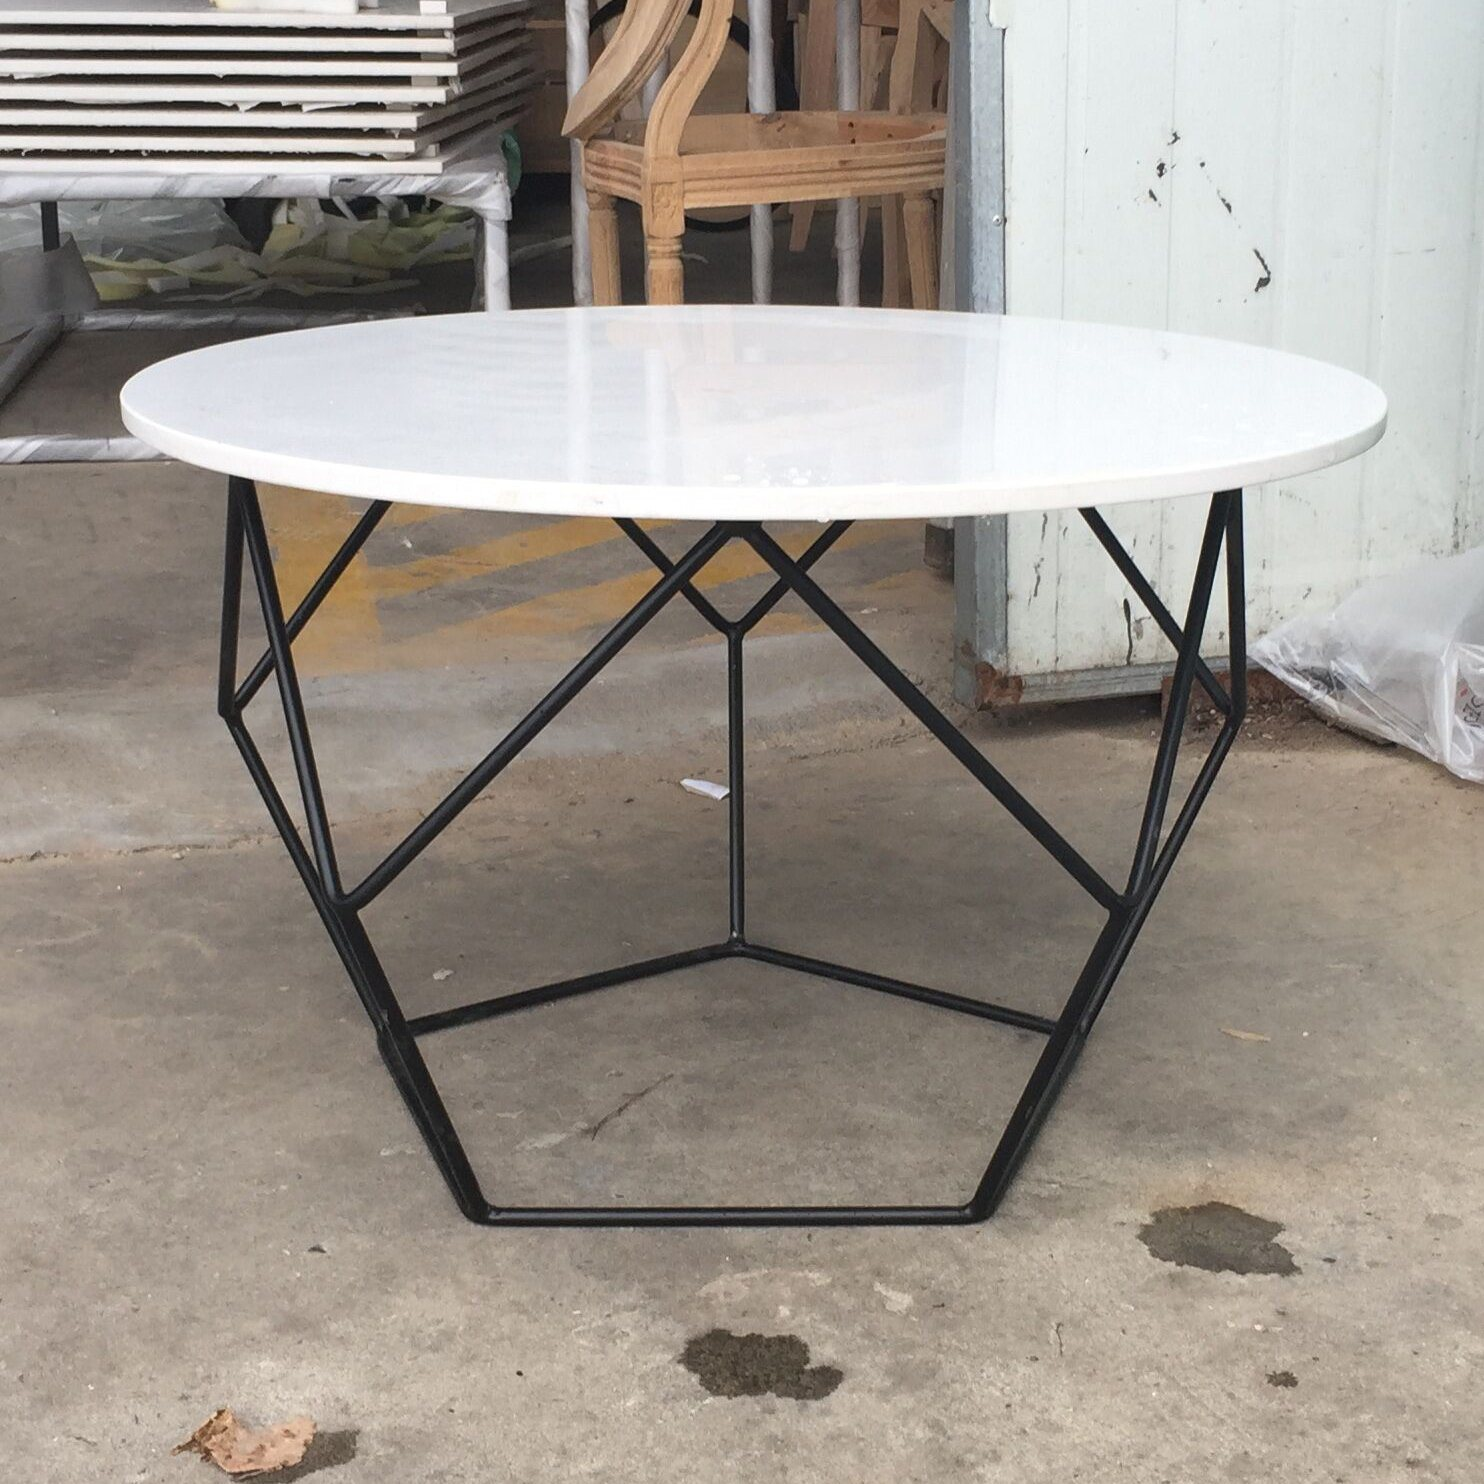 Small Round Coffee Table.China Modern Metal Leg Granite Top Small Round Coffee Table Photos